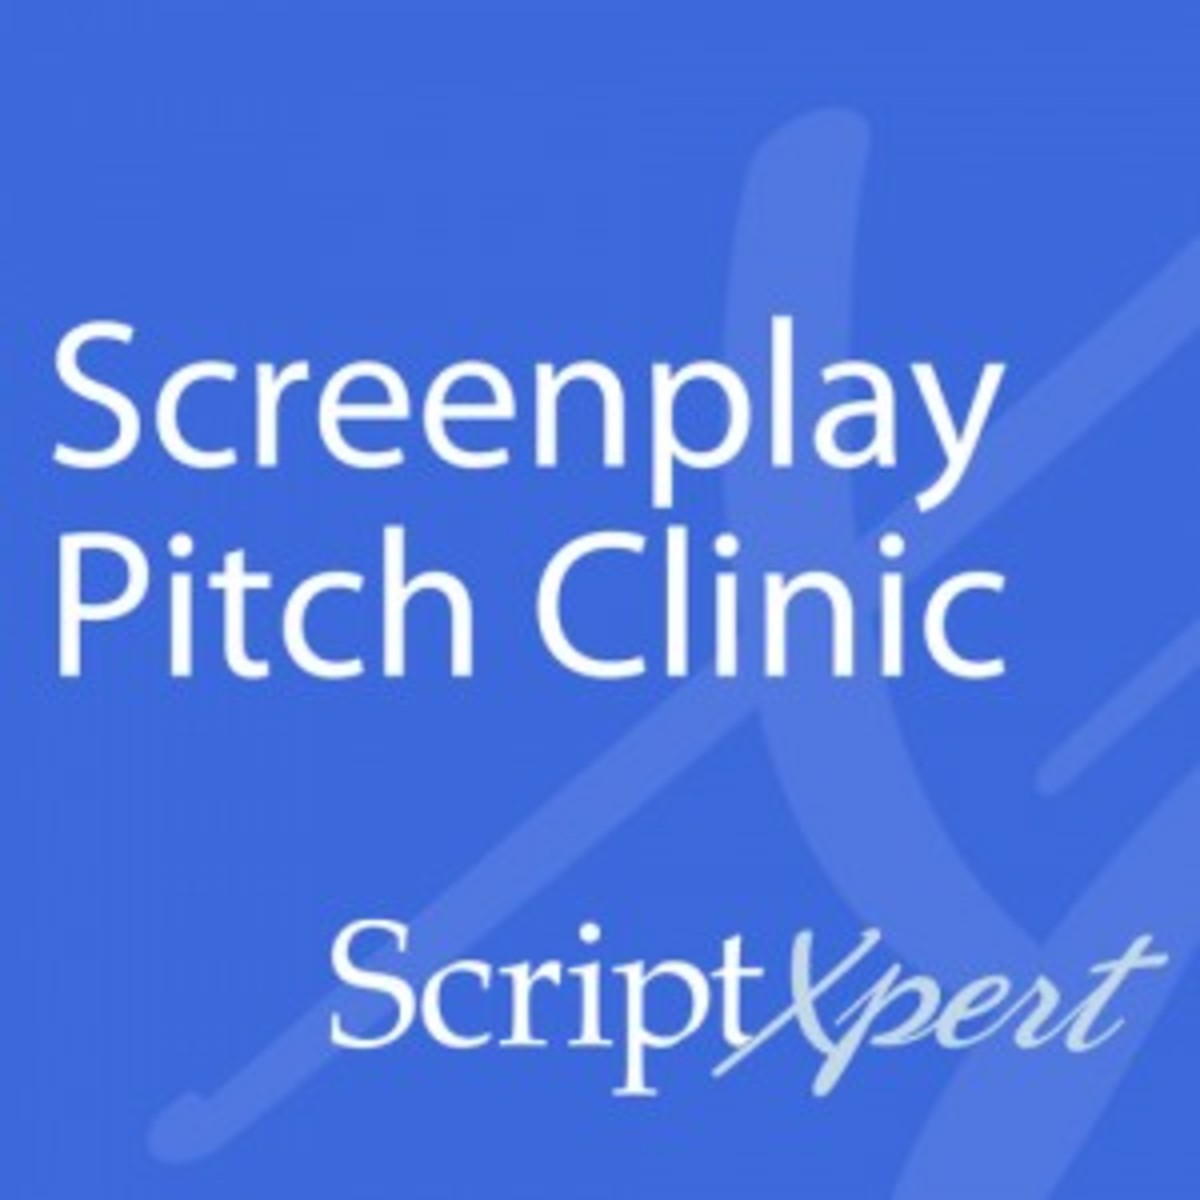 ScriptXpert Screenplay Pitch Clinic